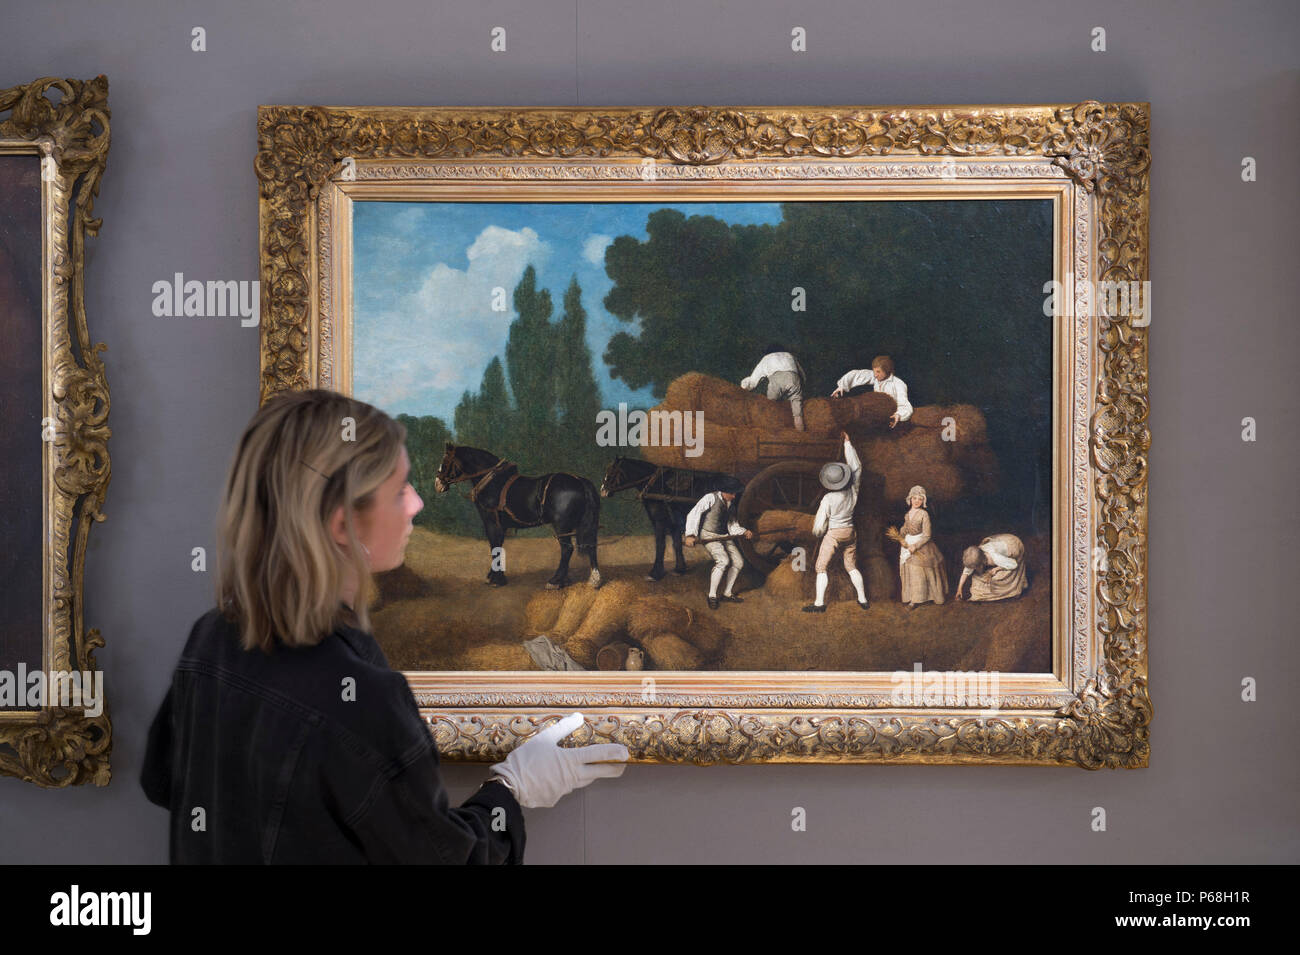 Bonhams New Bond Street, London, UK. 29 June, 2018. Harvesting, by George Stubbs (1724-1806) and estimated at £350,000-450,000 in the Old Masters sale preview. Painted in the early 1780s, the work encapsulates Stubbs lyrical realism. The sale takes place on Wednesday 4 July 2018 at 2pm. Credit: Malcolm Park/Alamy Live News. Stock Photo